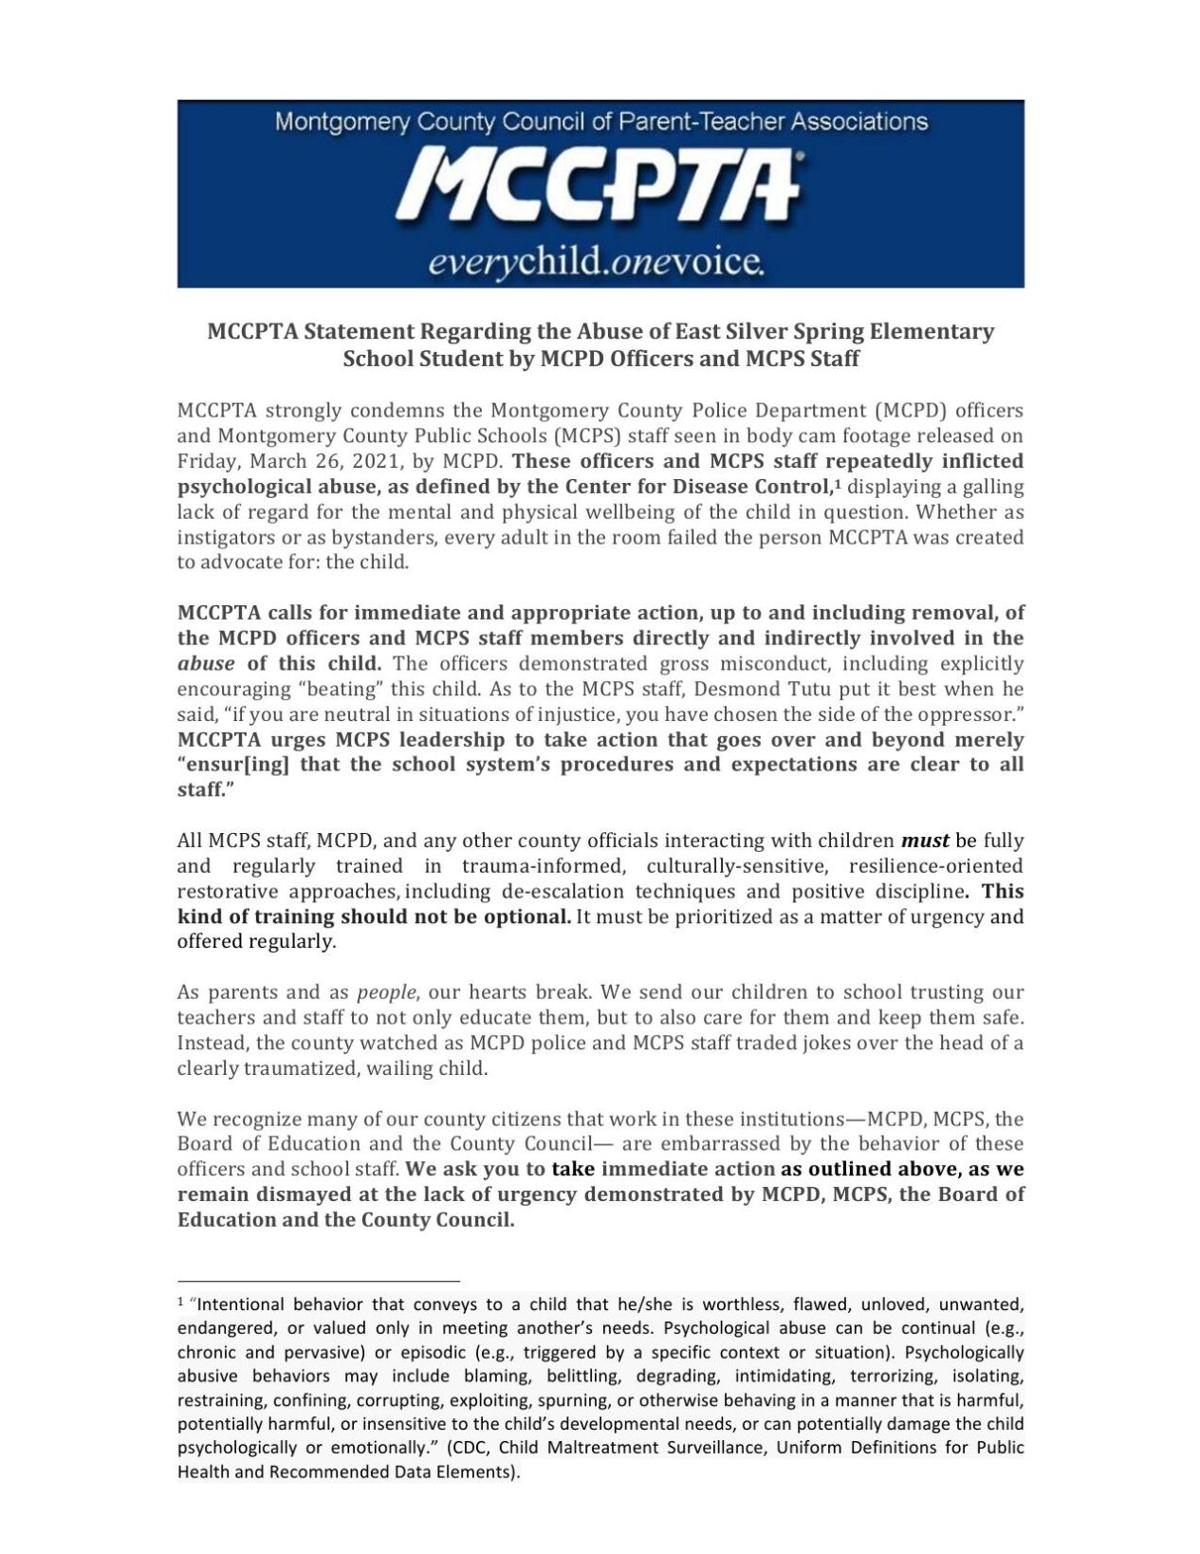 MCCPTA Statement Regarding the Abuse of East Silver Spring Elementary School Student by MCPD Officers and MCPS Staff